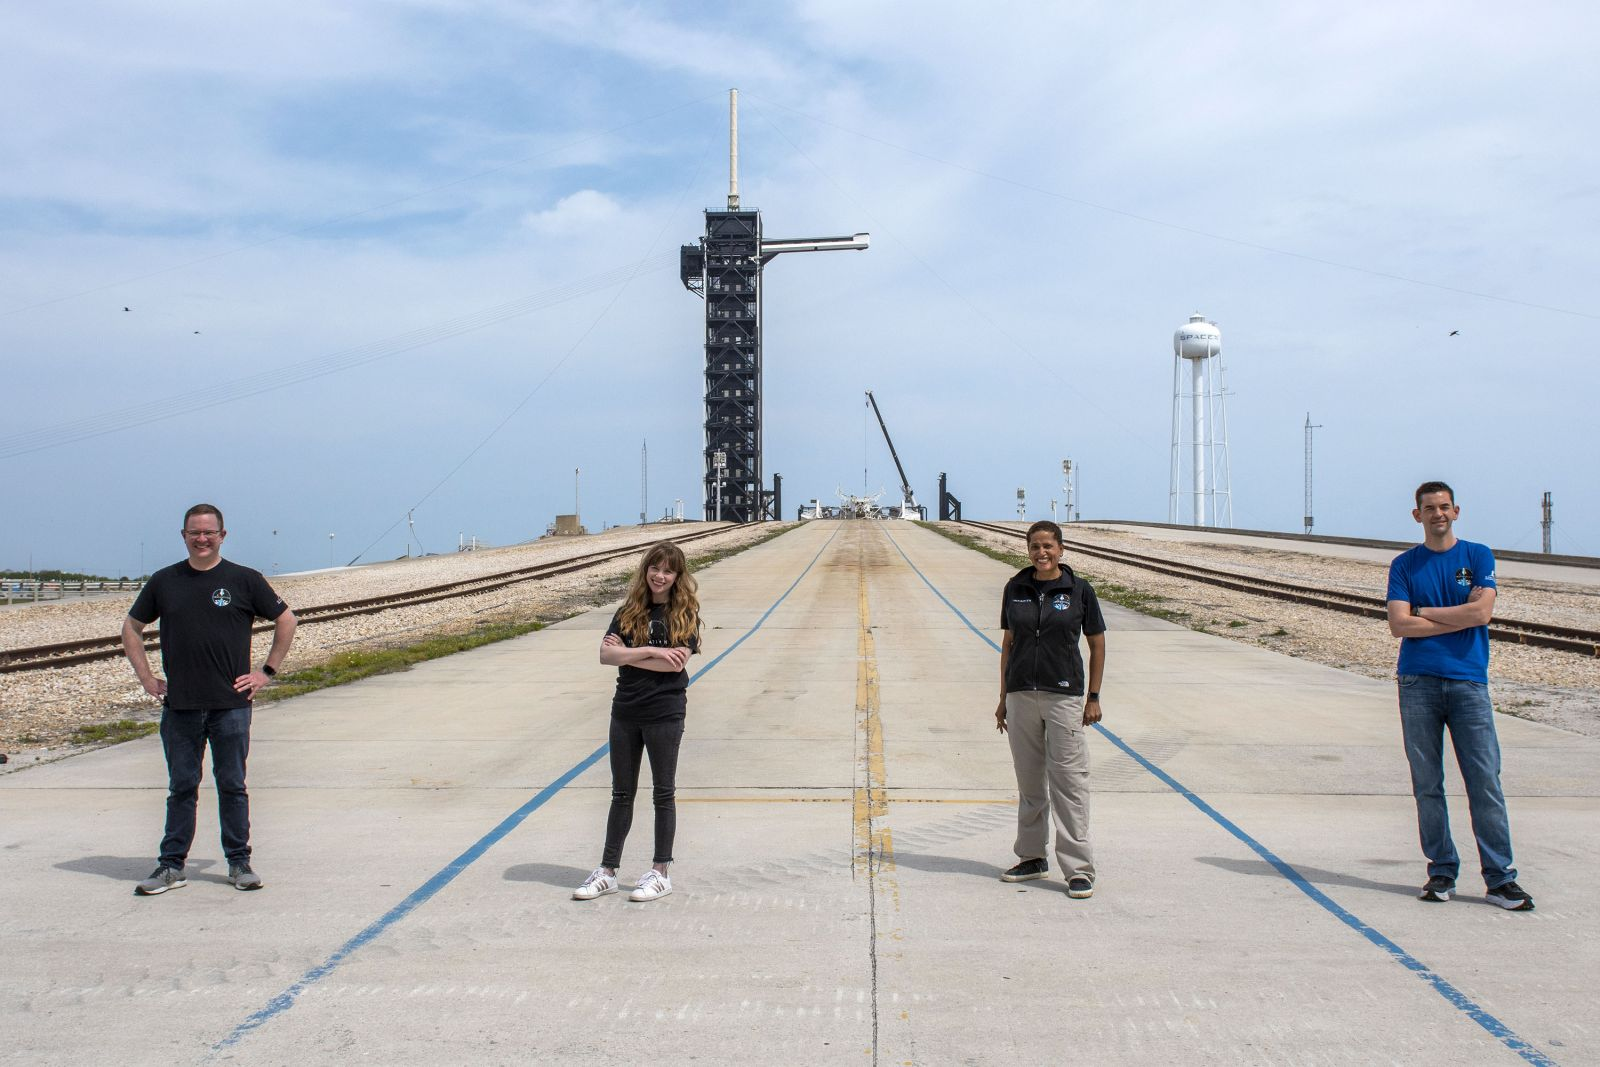 The Inspiration4 crew. From left to right: Chris Sembroski, Hayley Arceneaux, Sian Proctor and Jared Isaacman. Credit: SpaceX